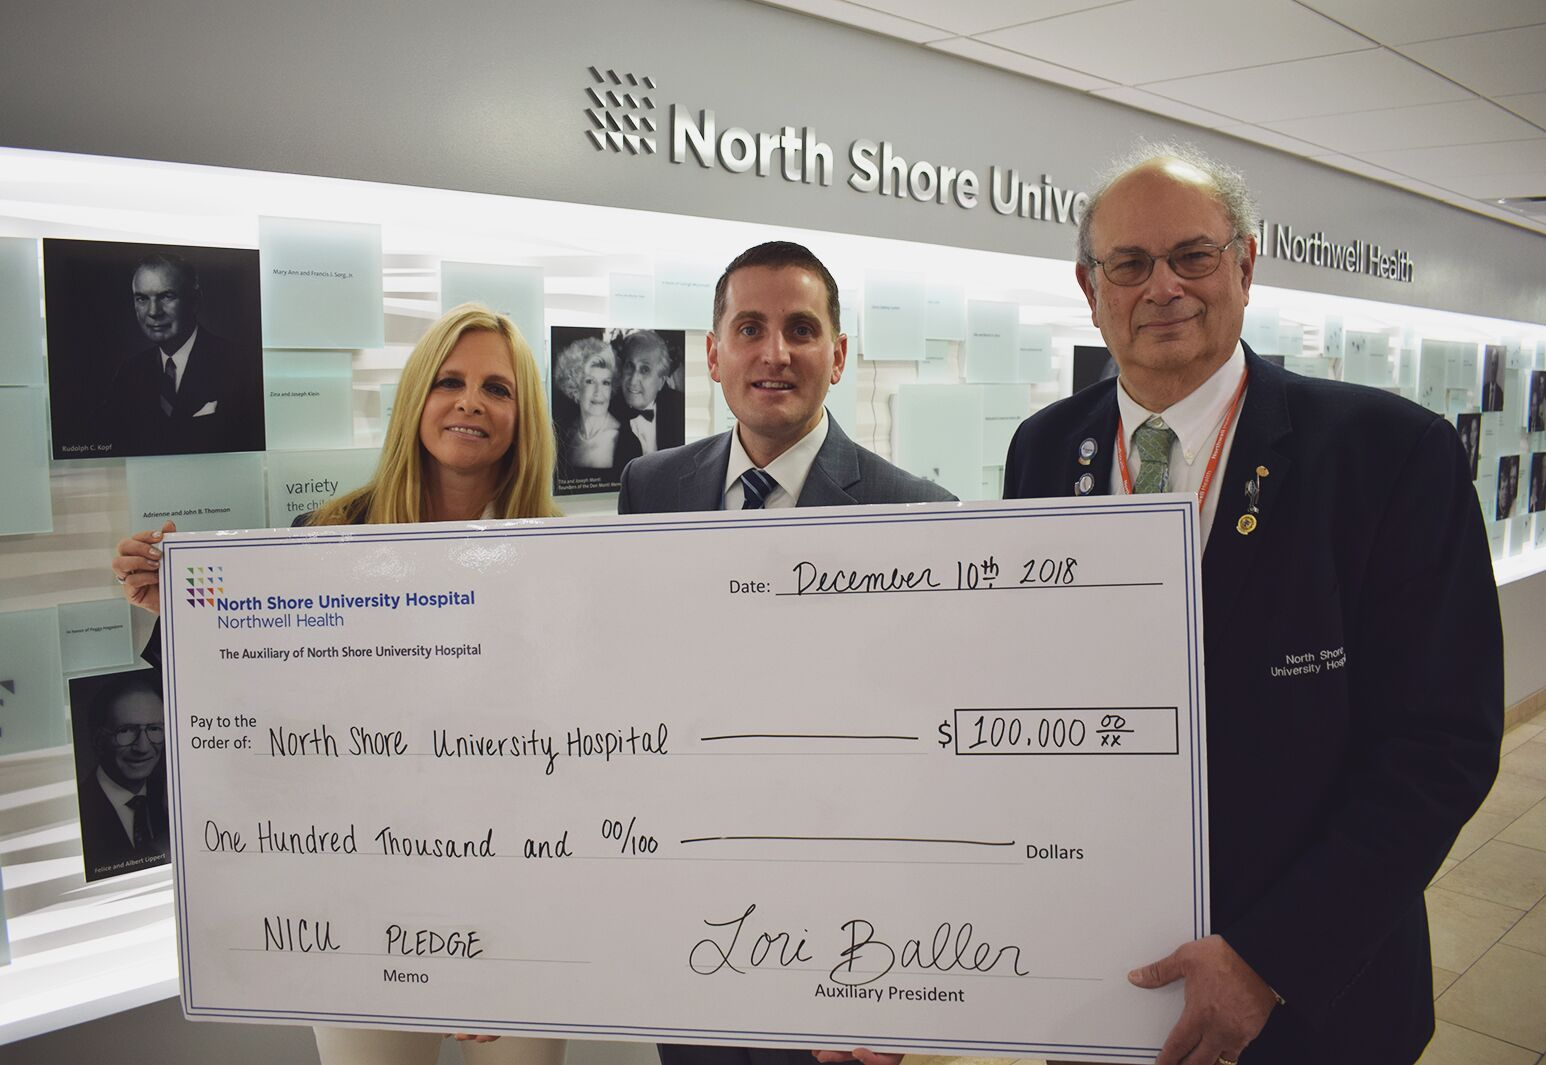 Auxiliary of North Shore University Hospital donation